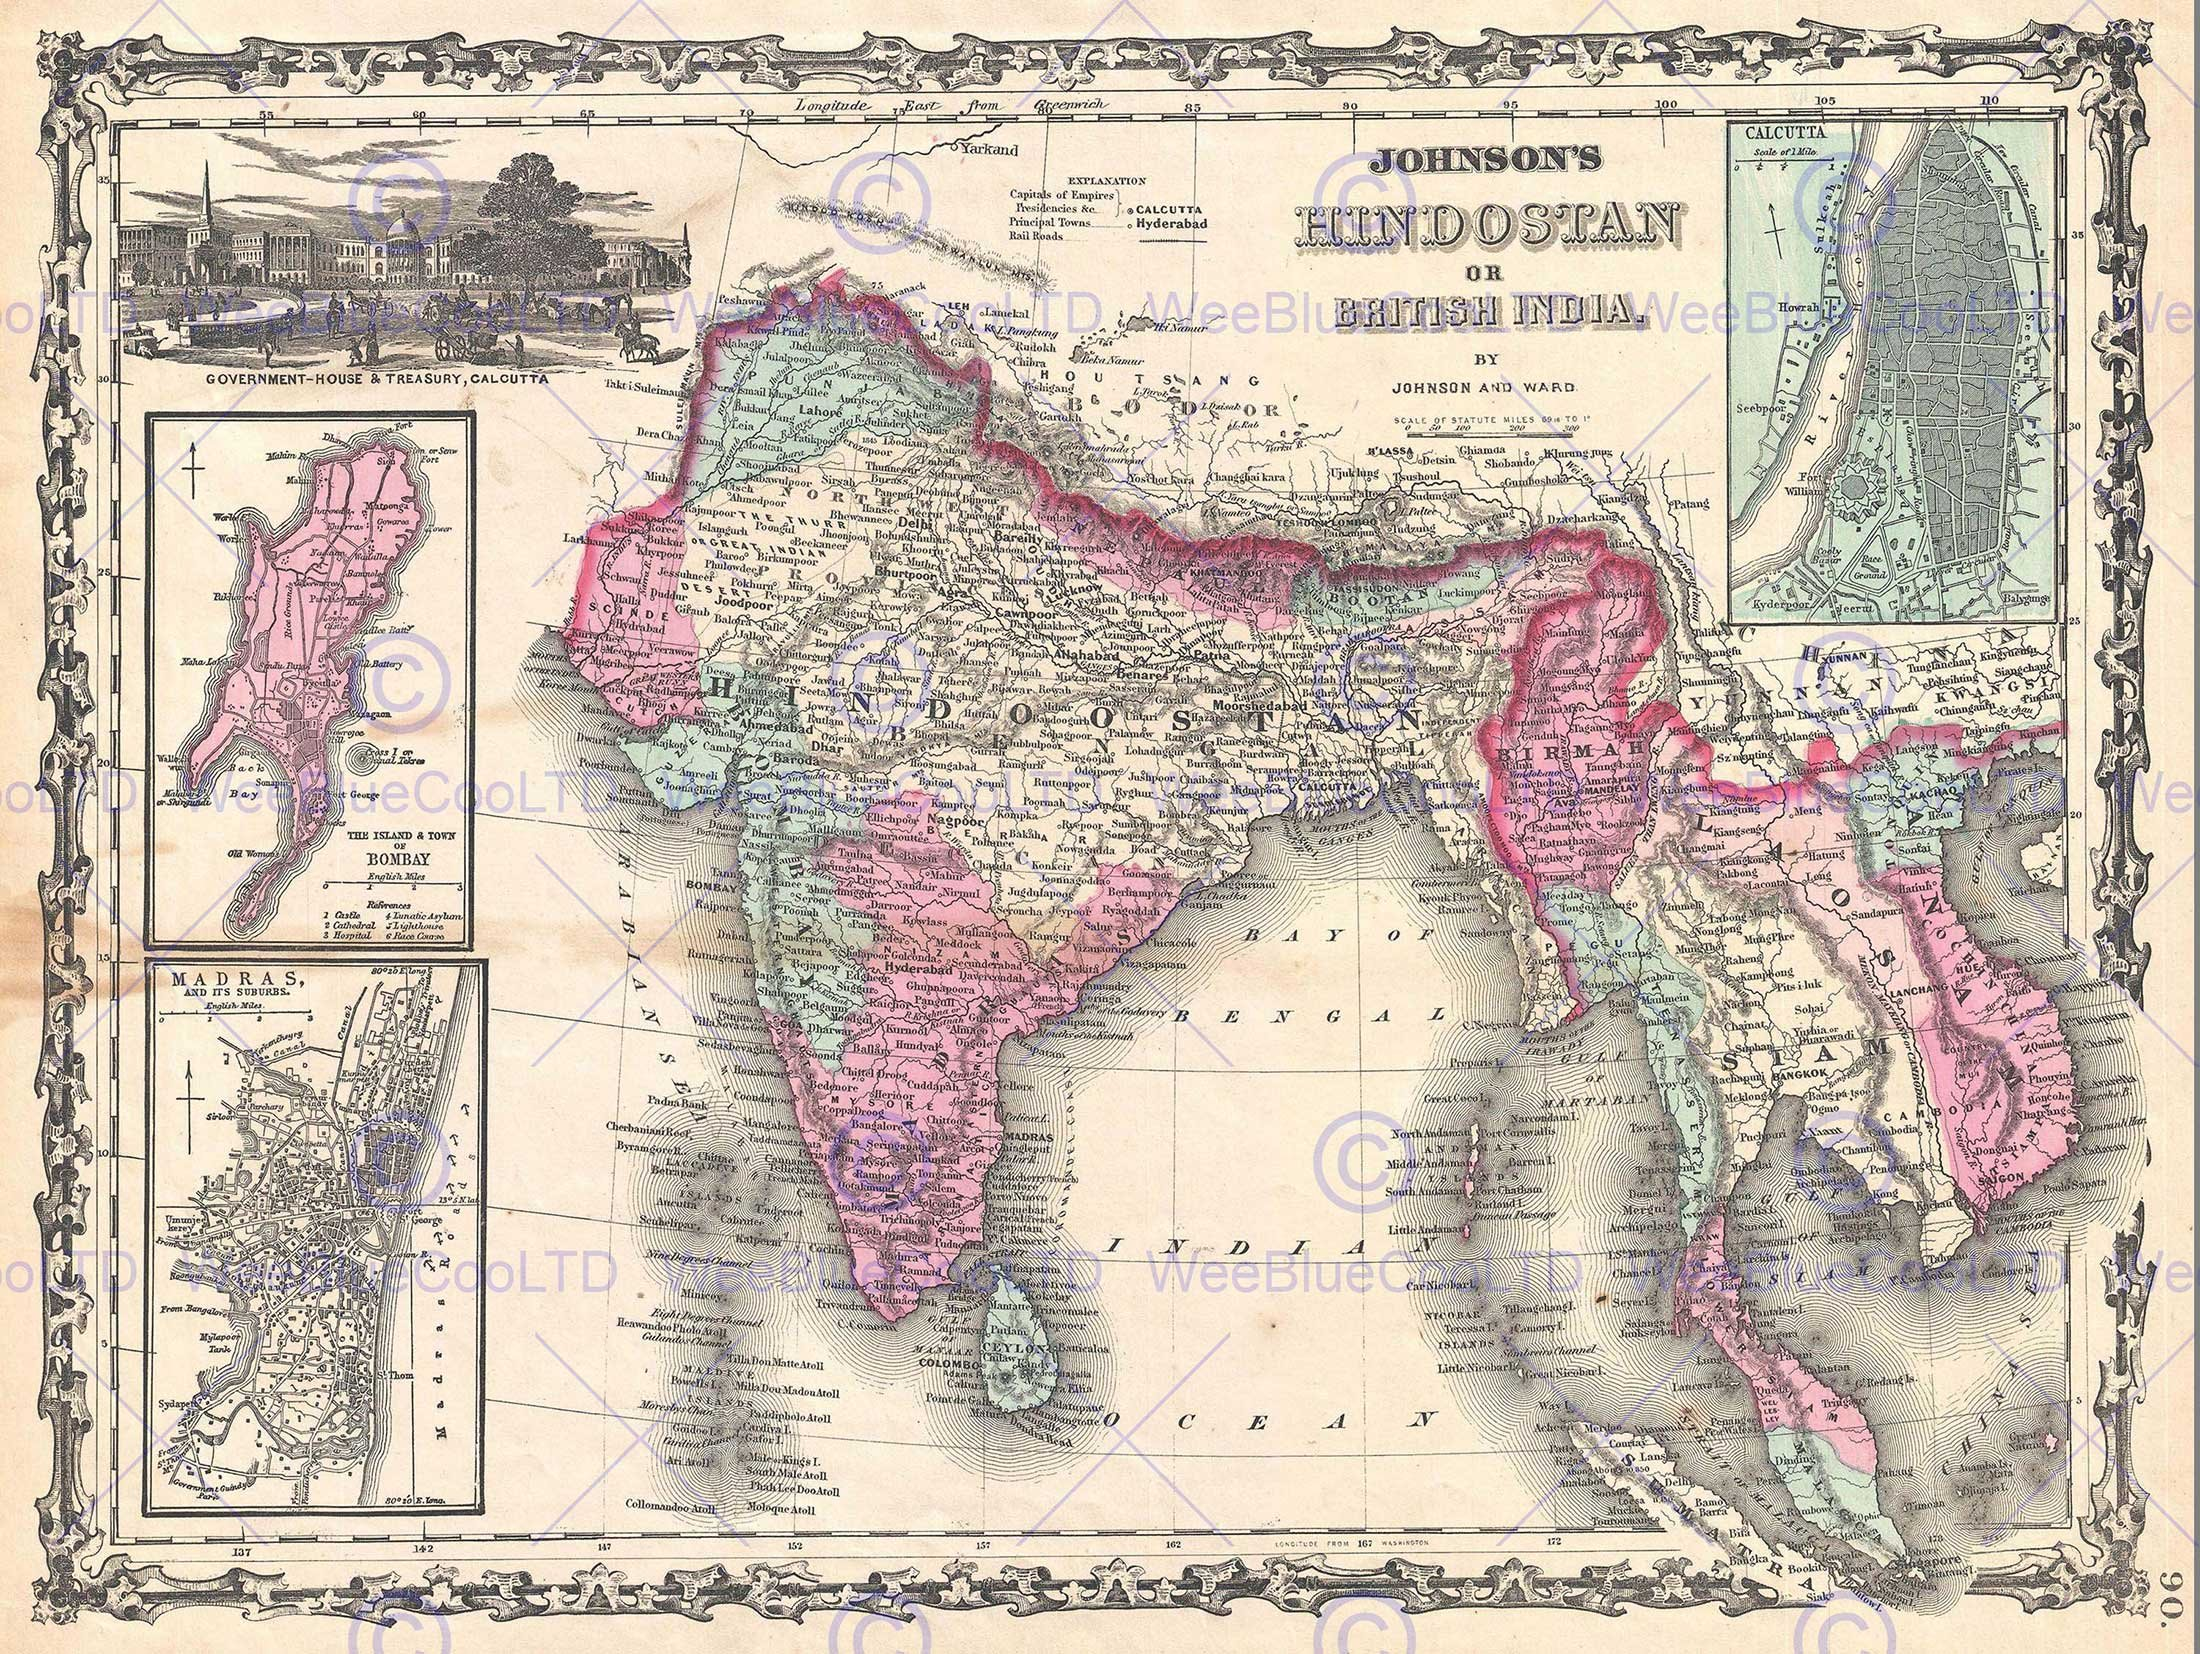 1862 JOHNSON MAP INDIA AND SOUTHEAST ASIA VINTAGE POSTER ART PRINT 12x16 inch 30x40cm 2935PY